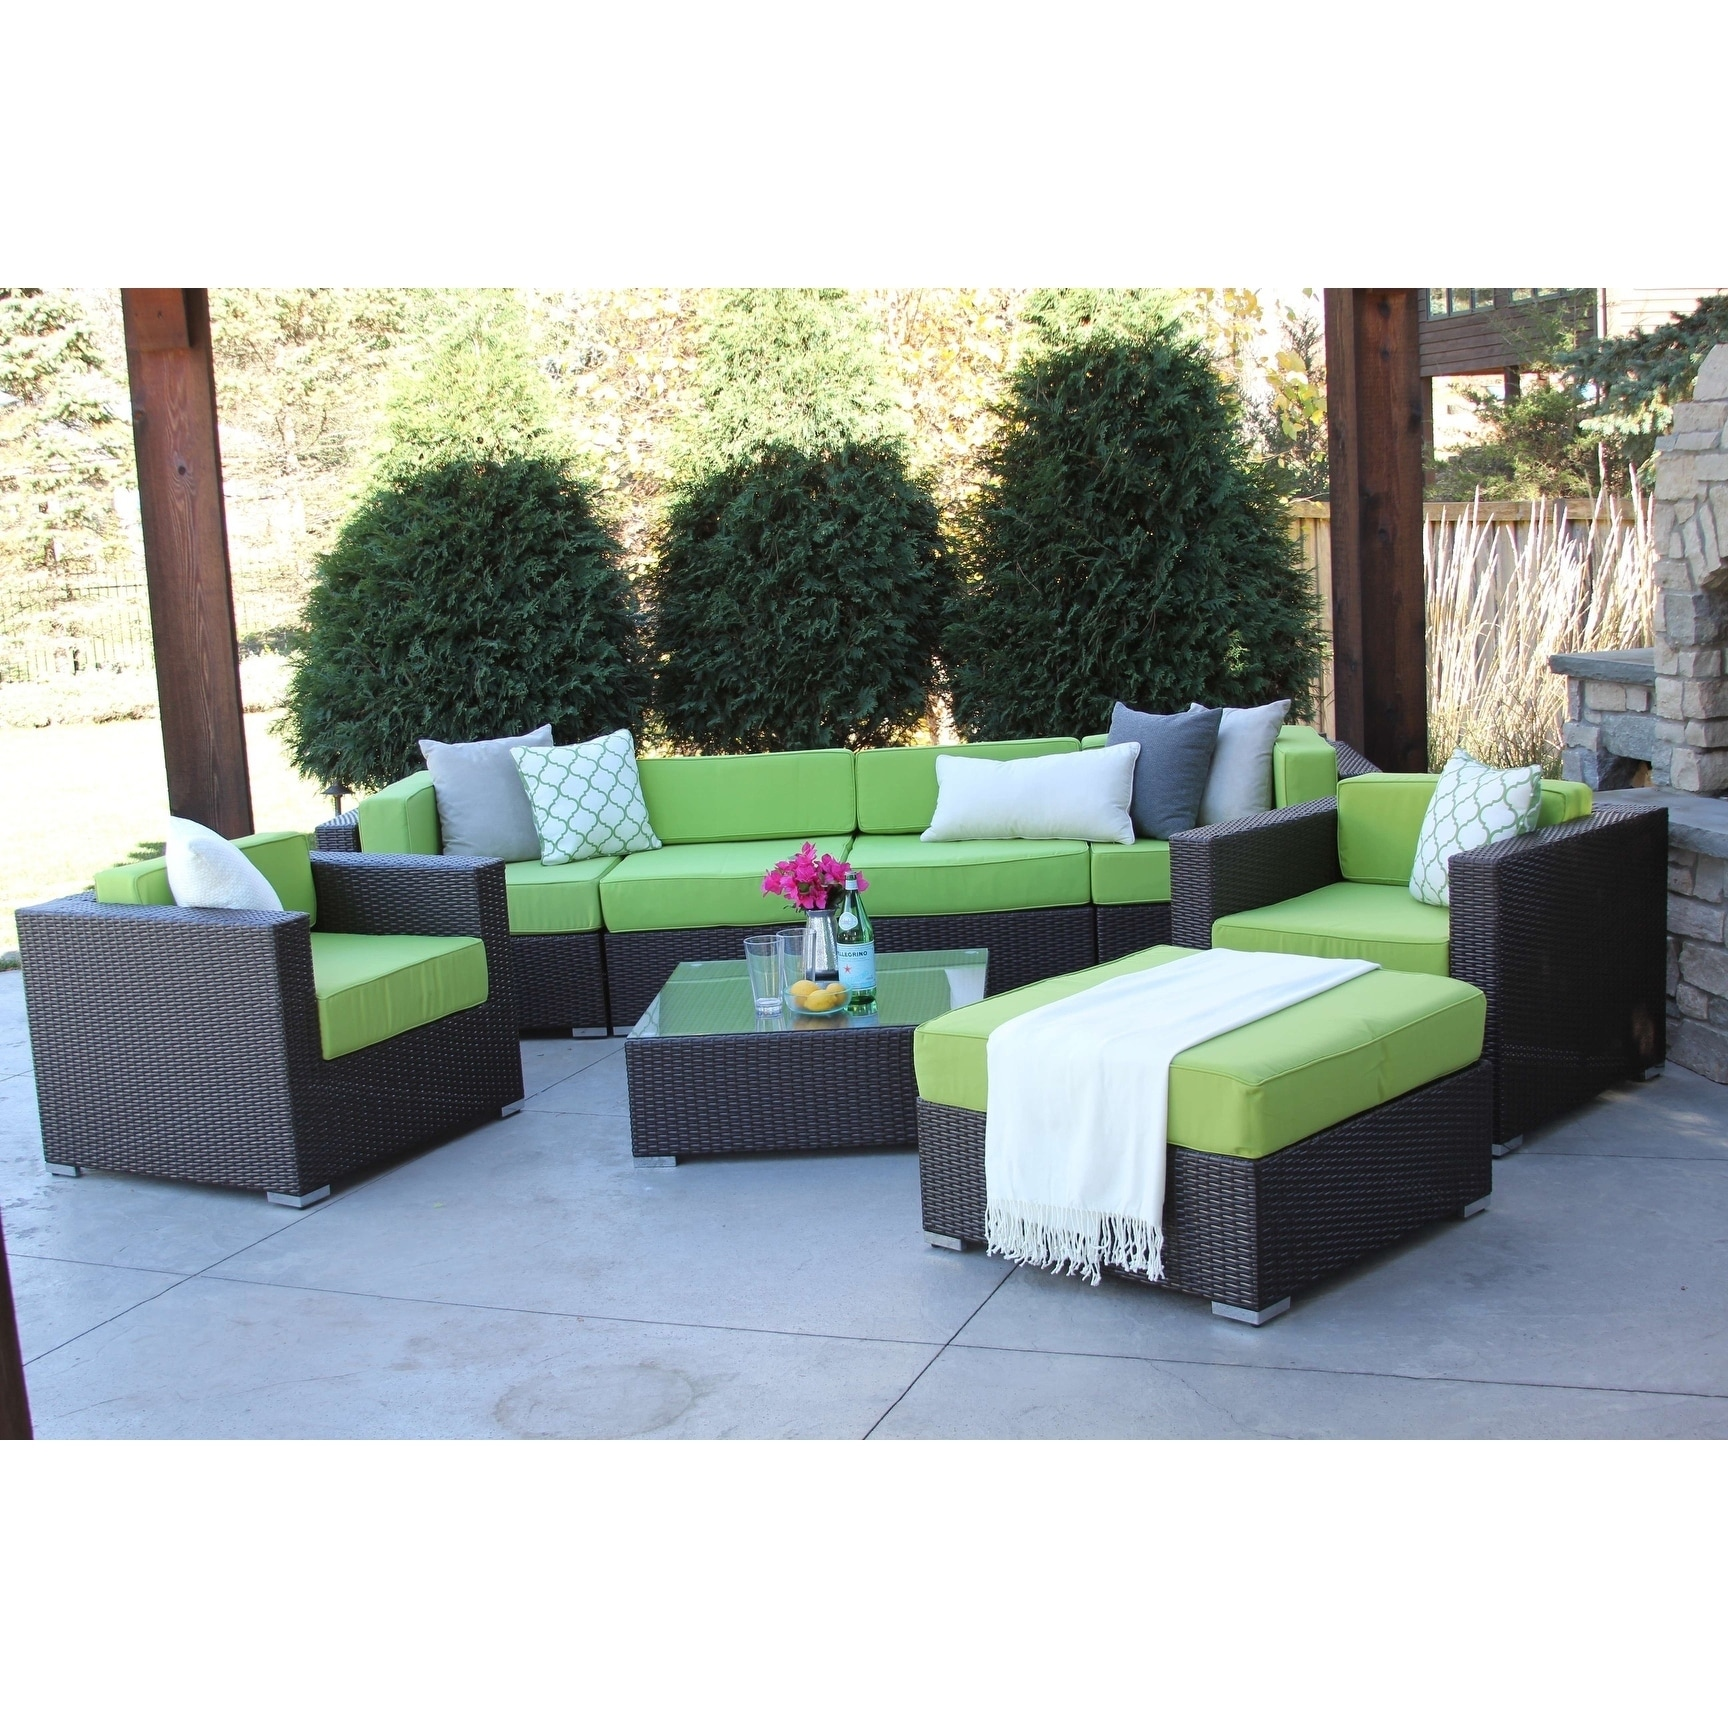 Owen 5 Piece Rattan Sofa Set With Cushions Hiawatha 8 Pc Modern Outdoor Rattan Patio Furniture Sofa Set Modular